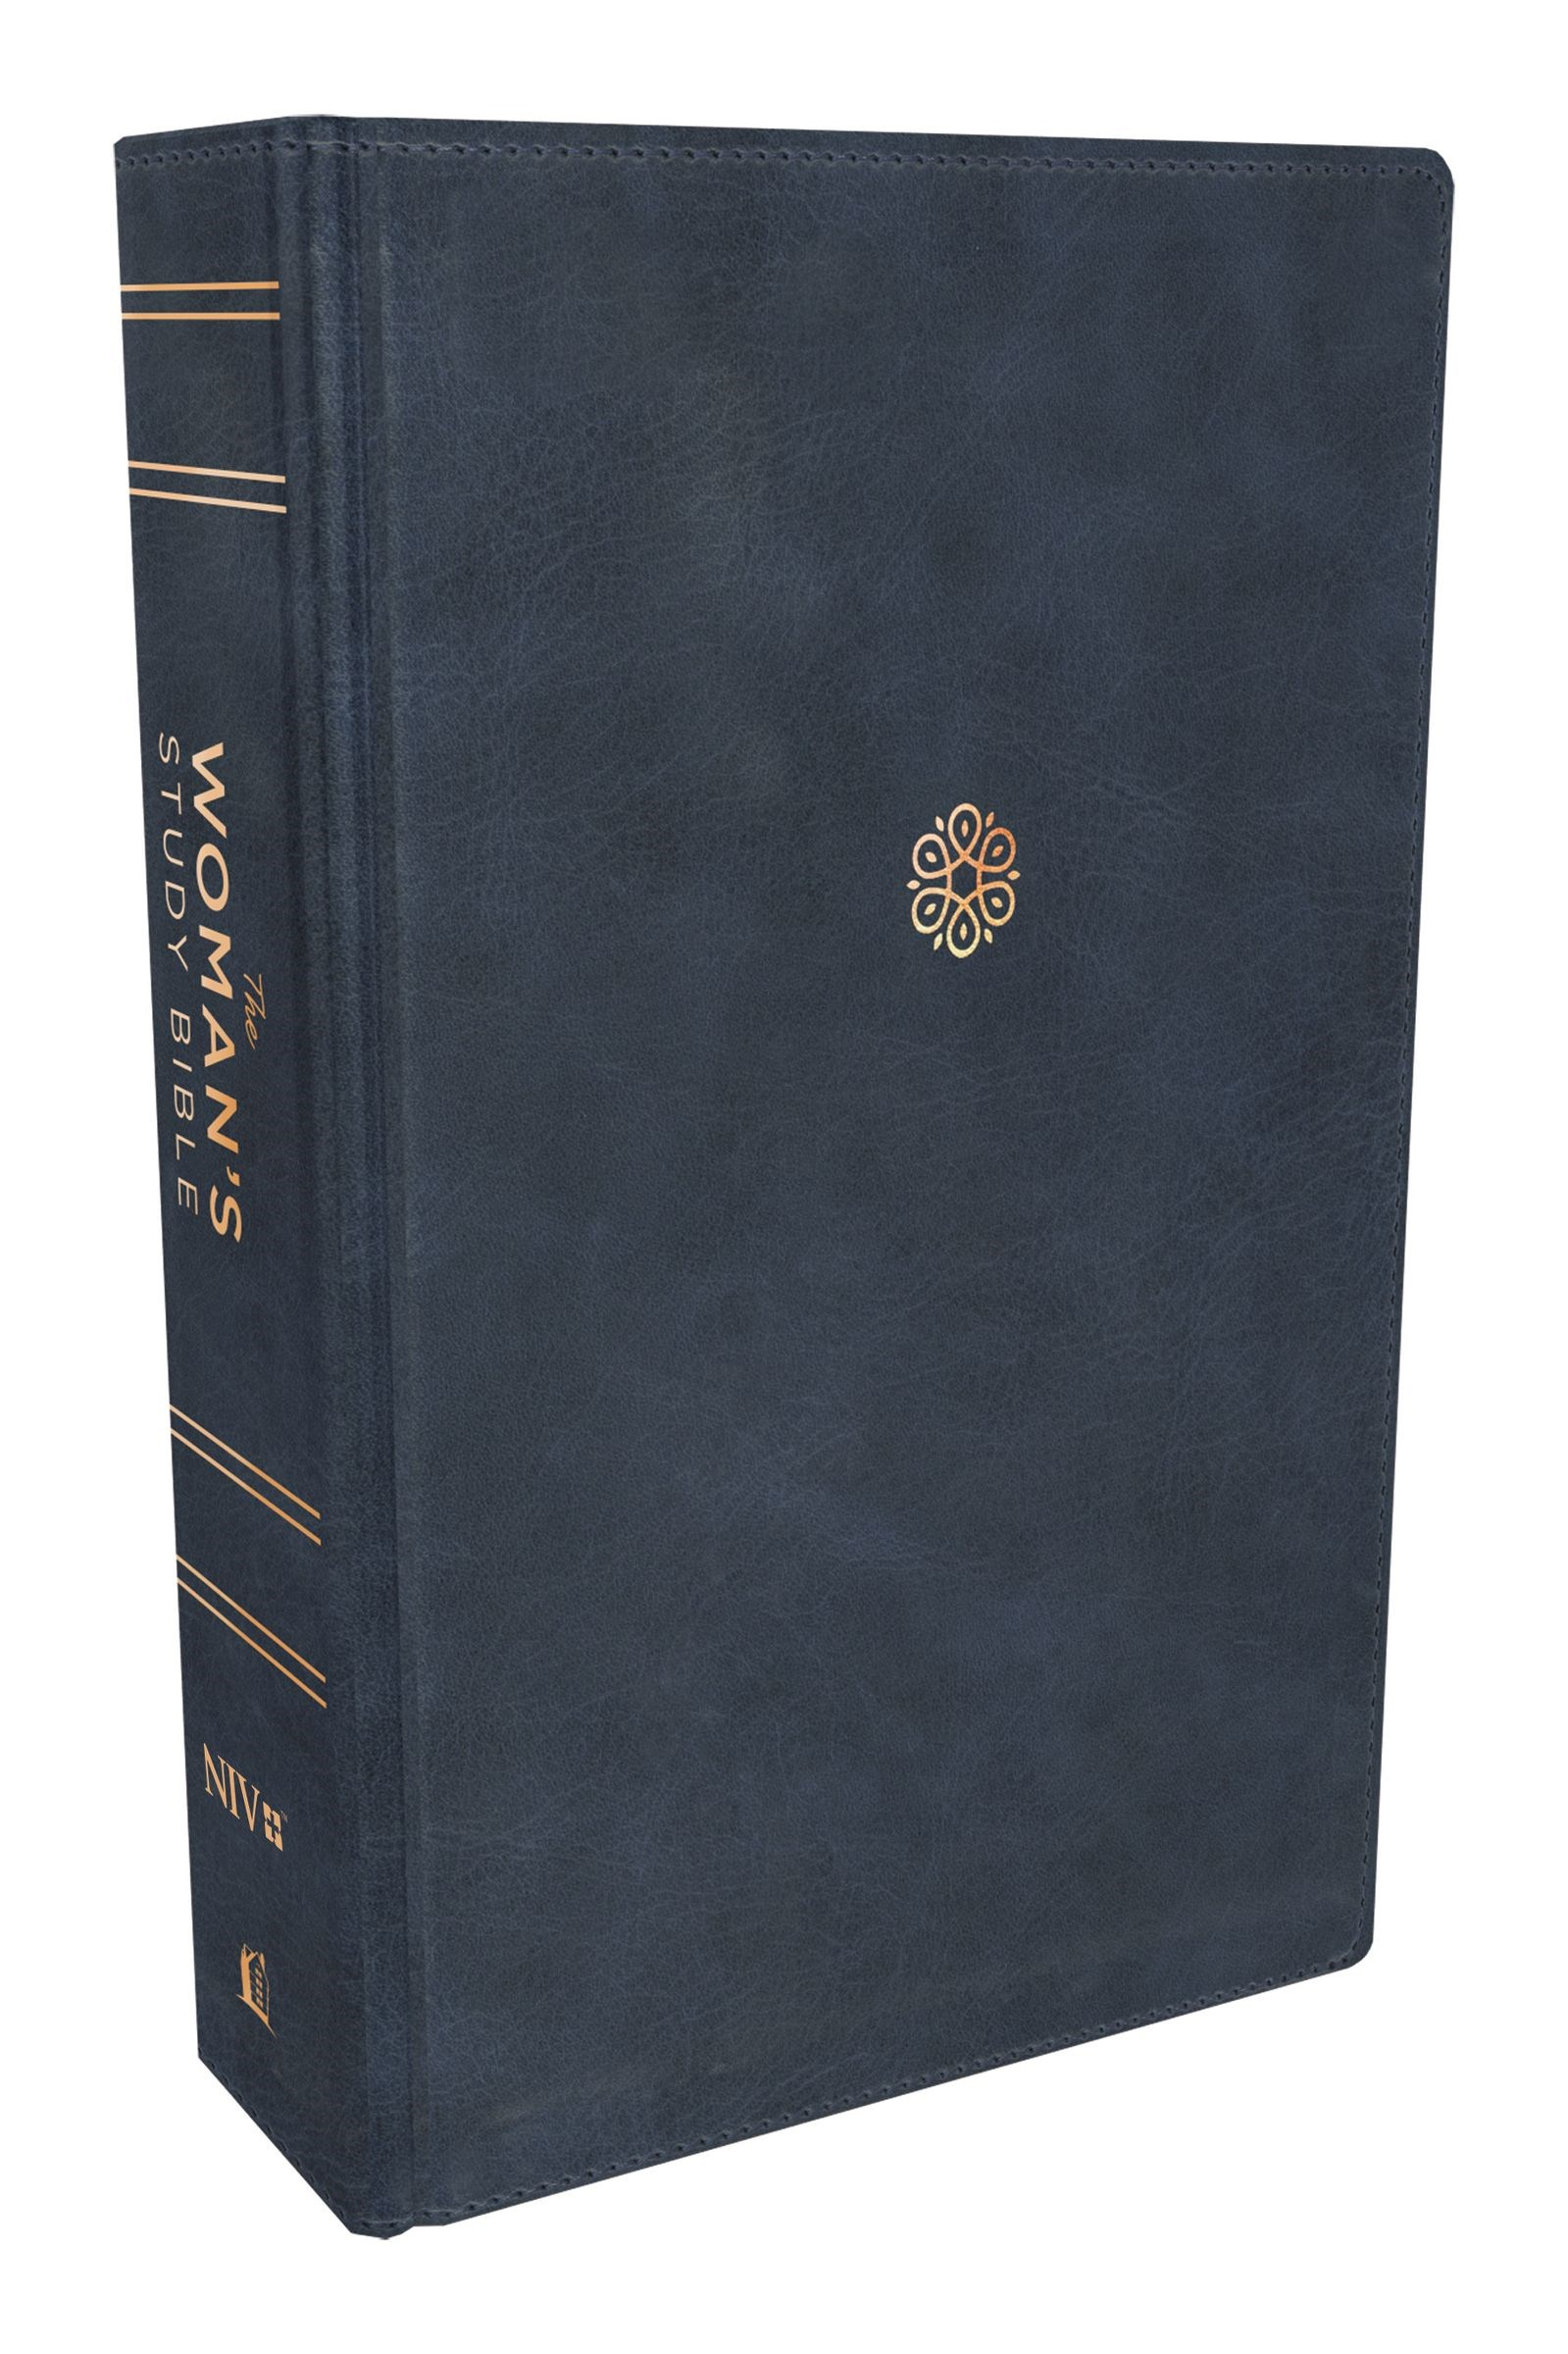 NIV The Woman's Study Bible (Full Color)-Blue Leathersoft